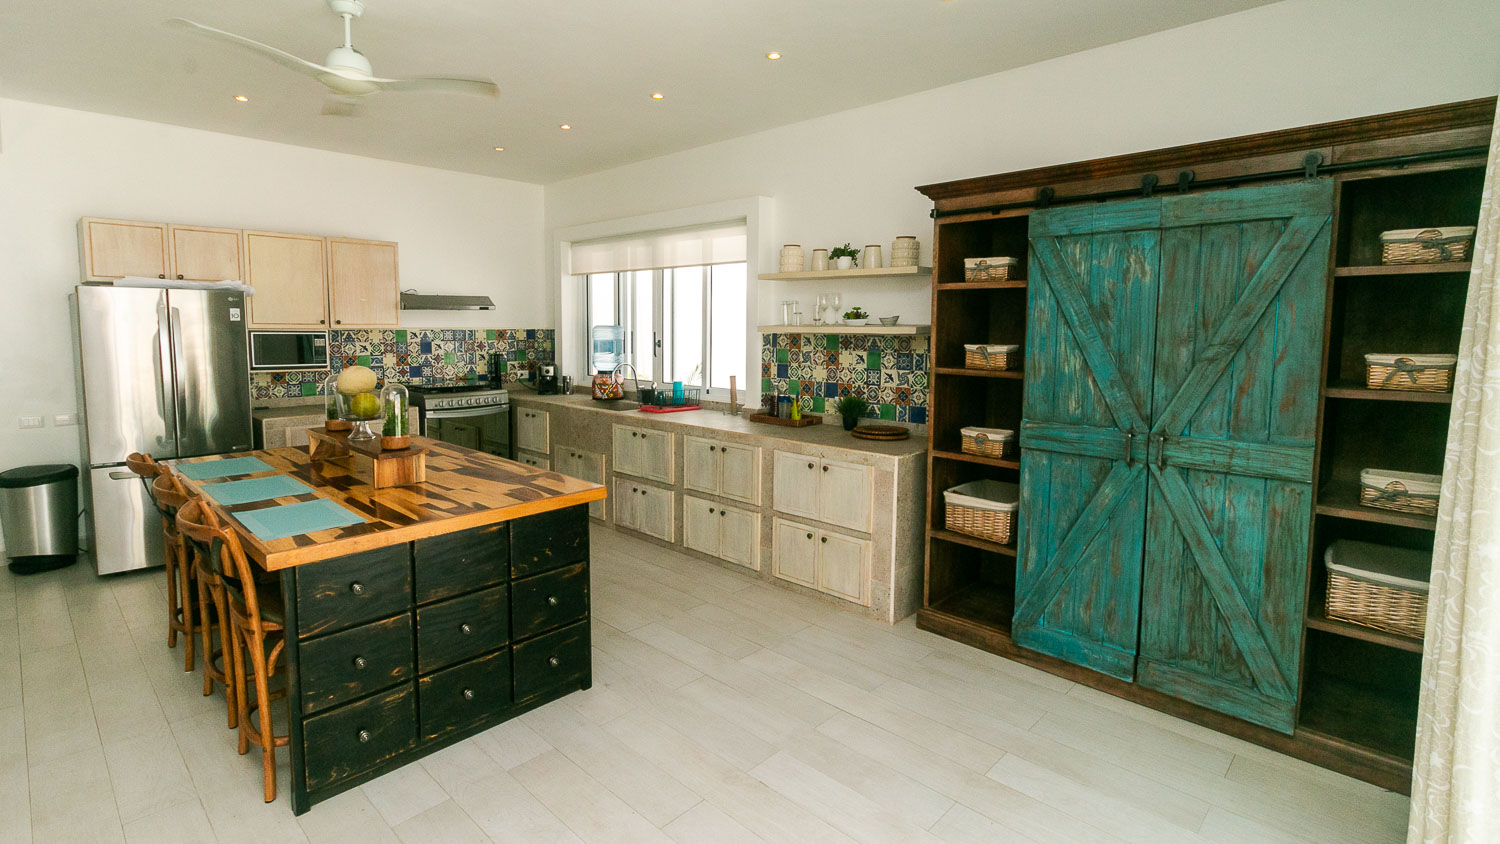 4-bedroom-house-in-a-gated-community-in-Tulum-Kitchen